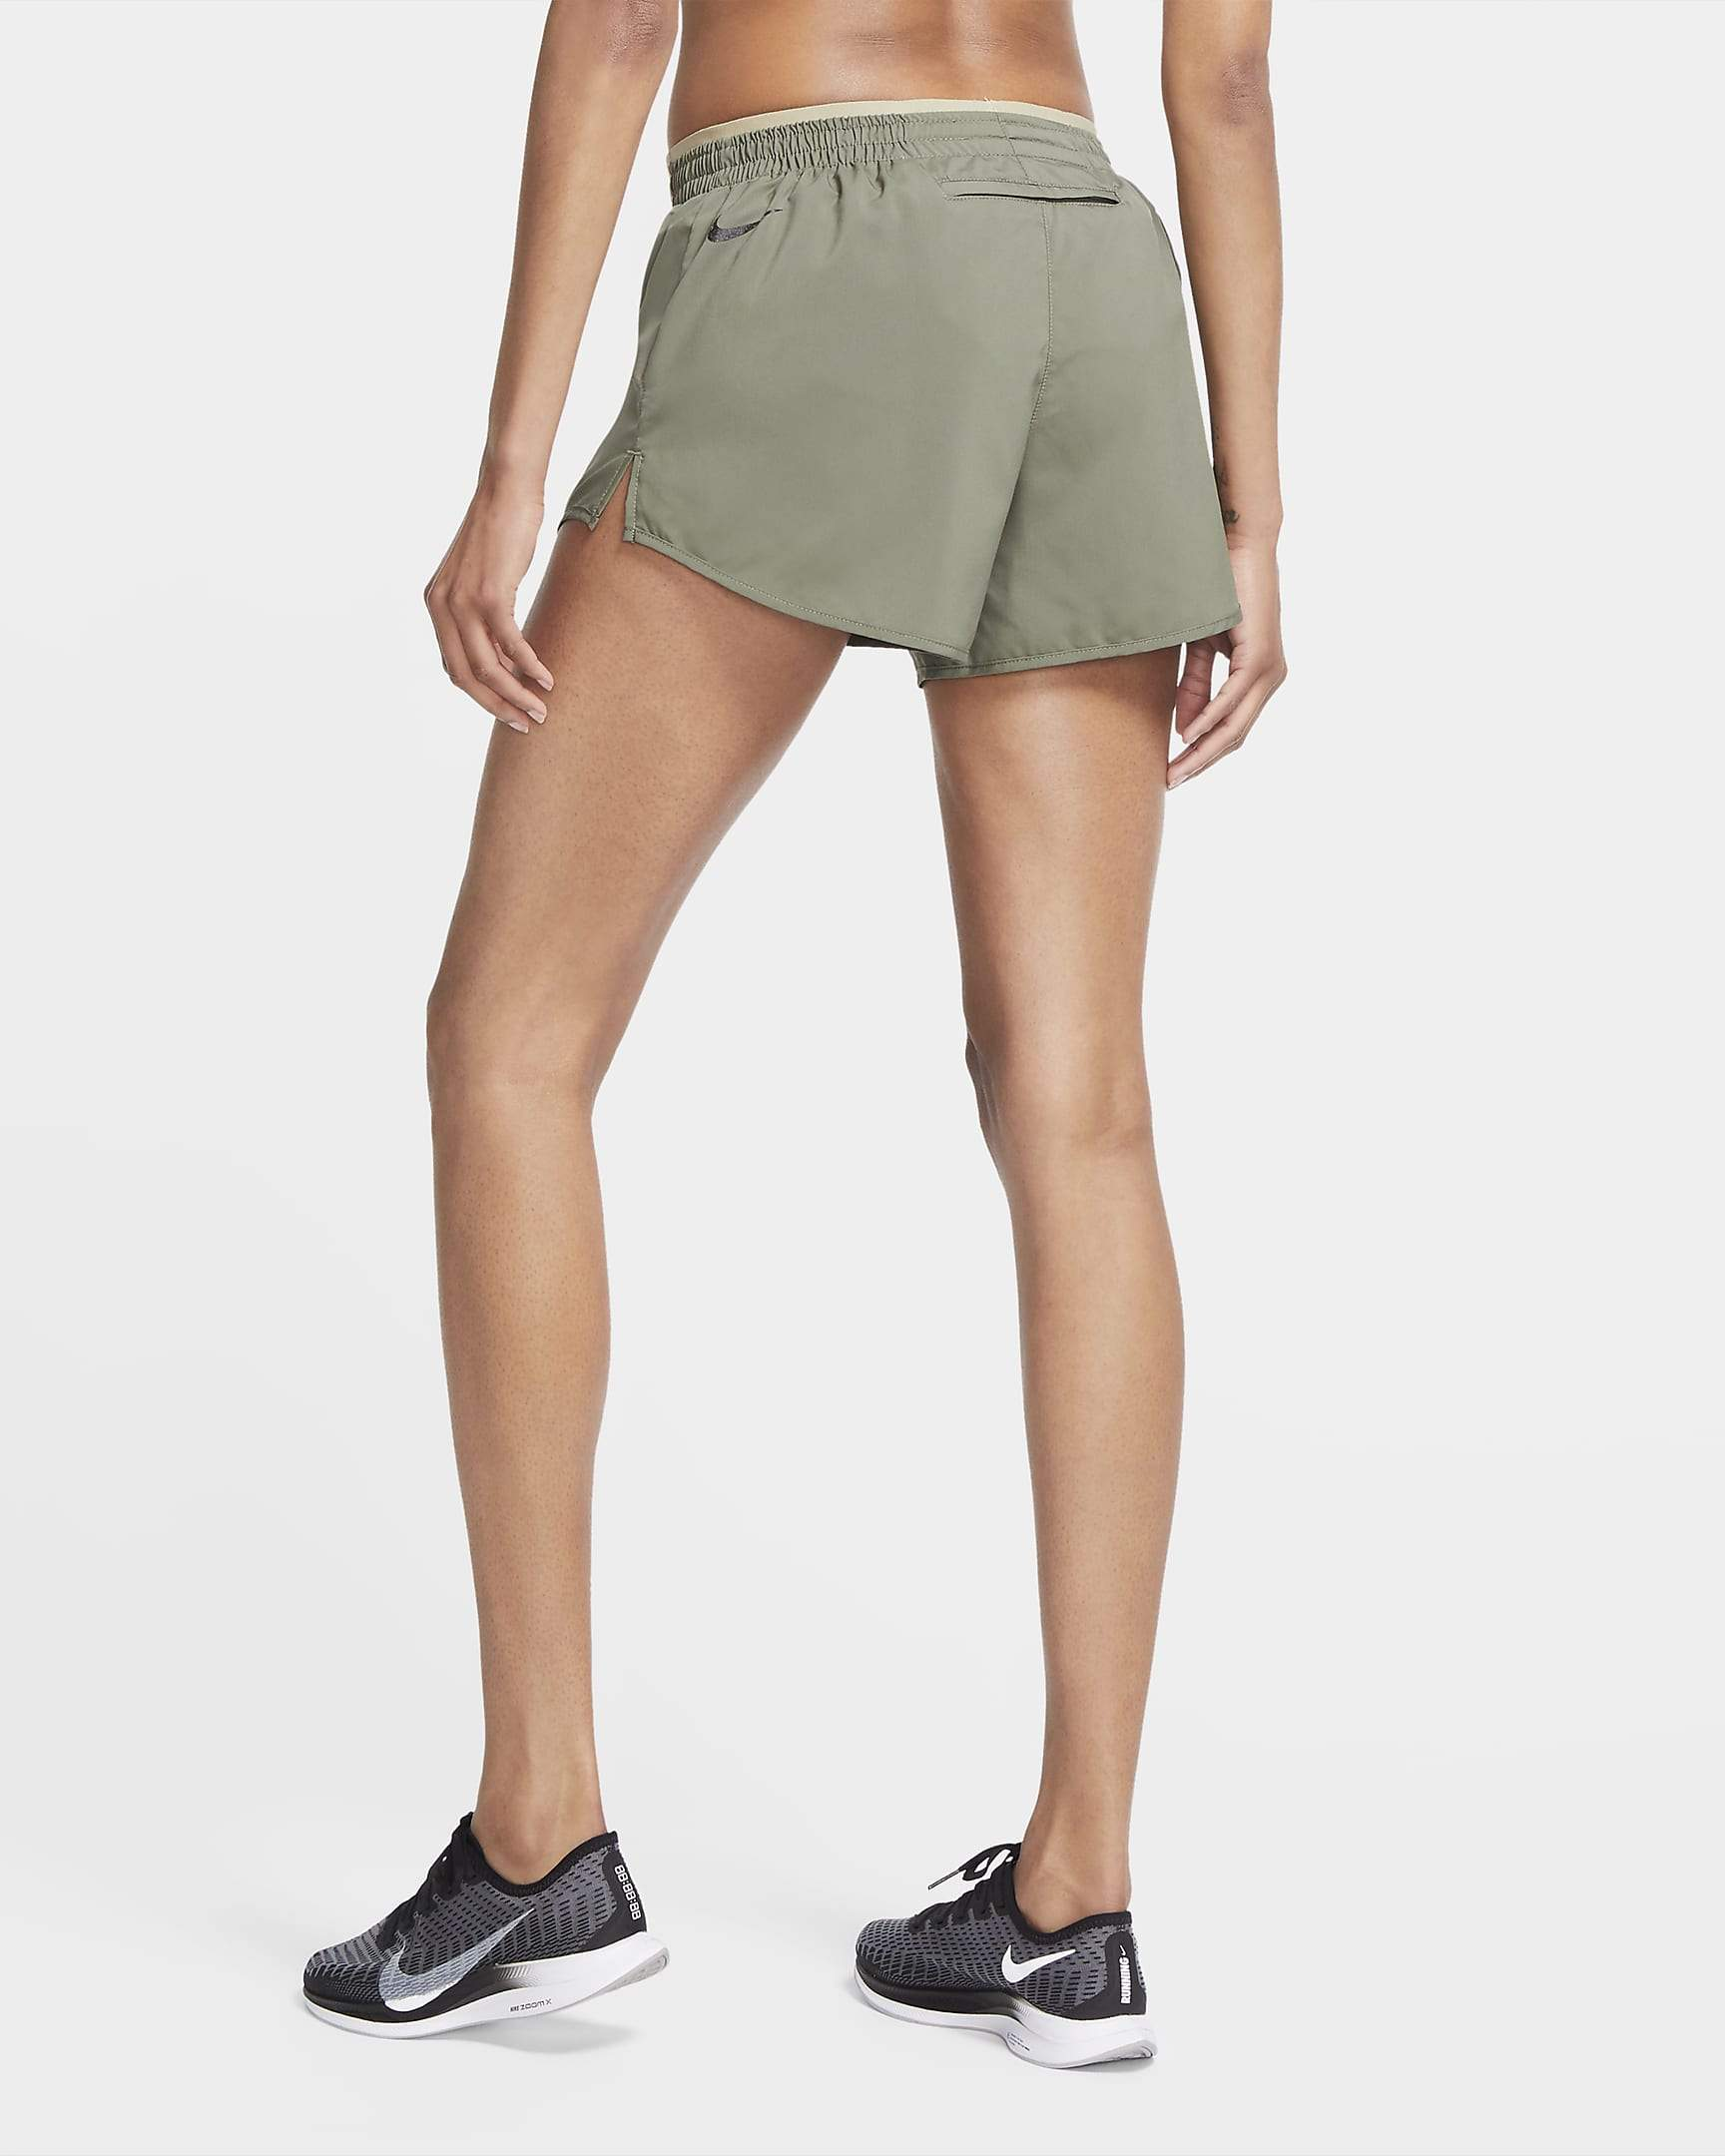 Nike Womens Icon Clash Tempo Luxe Shorts - Twilight Marsh/Mystic Stone/Black/Twilight Marsh/Mystic Stone/Black Nike